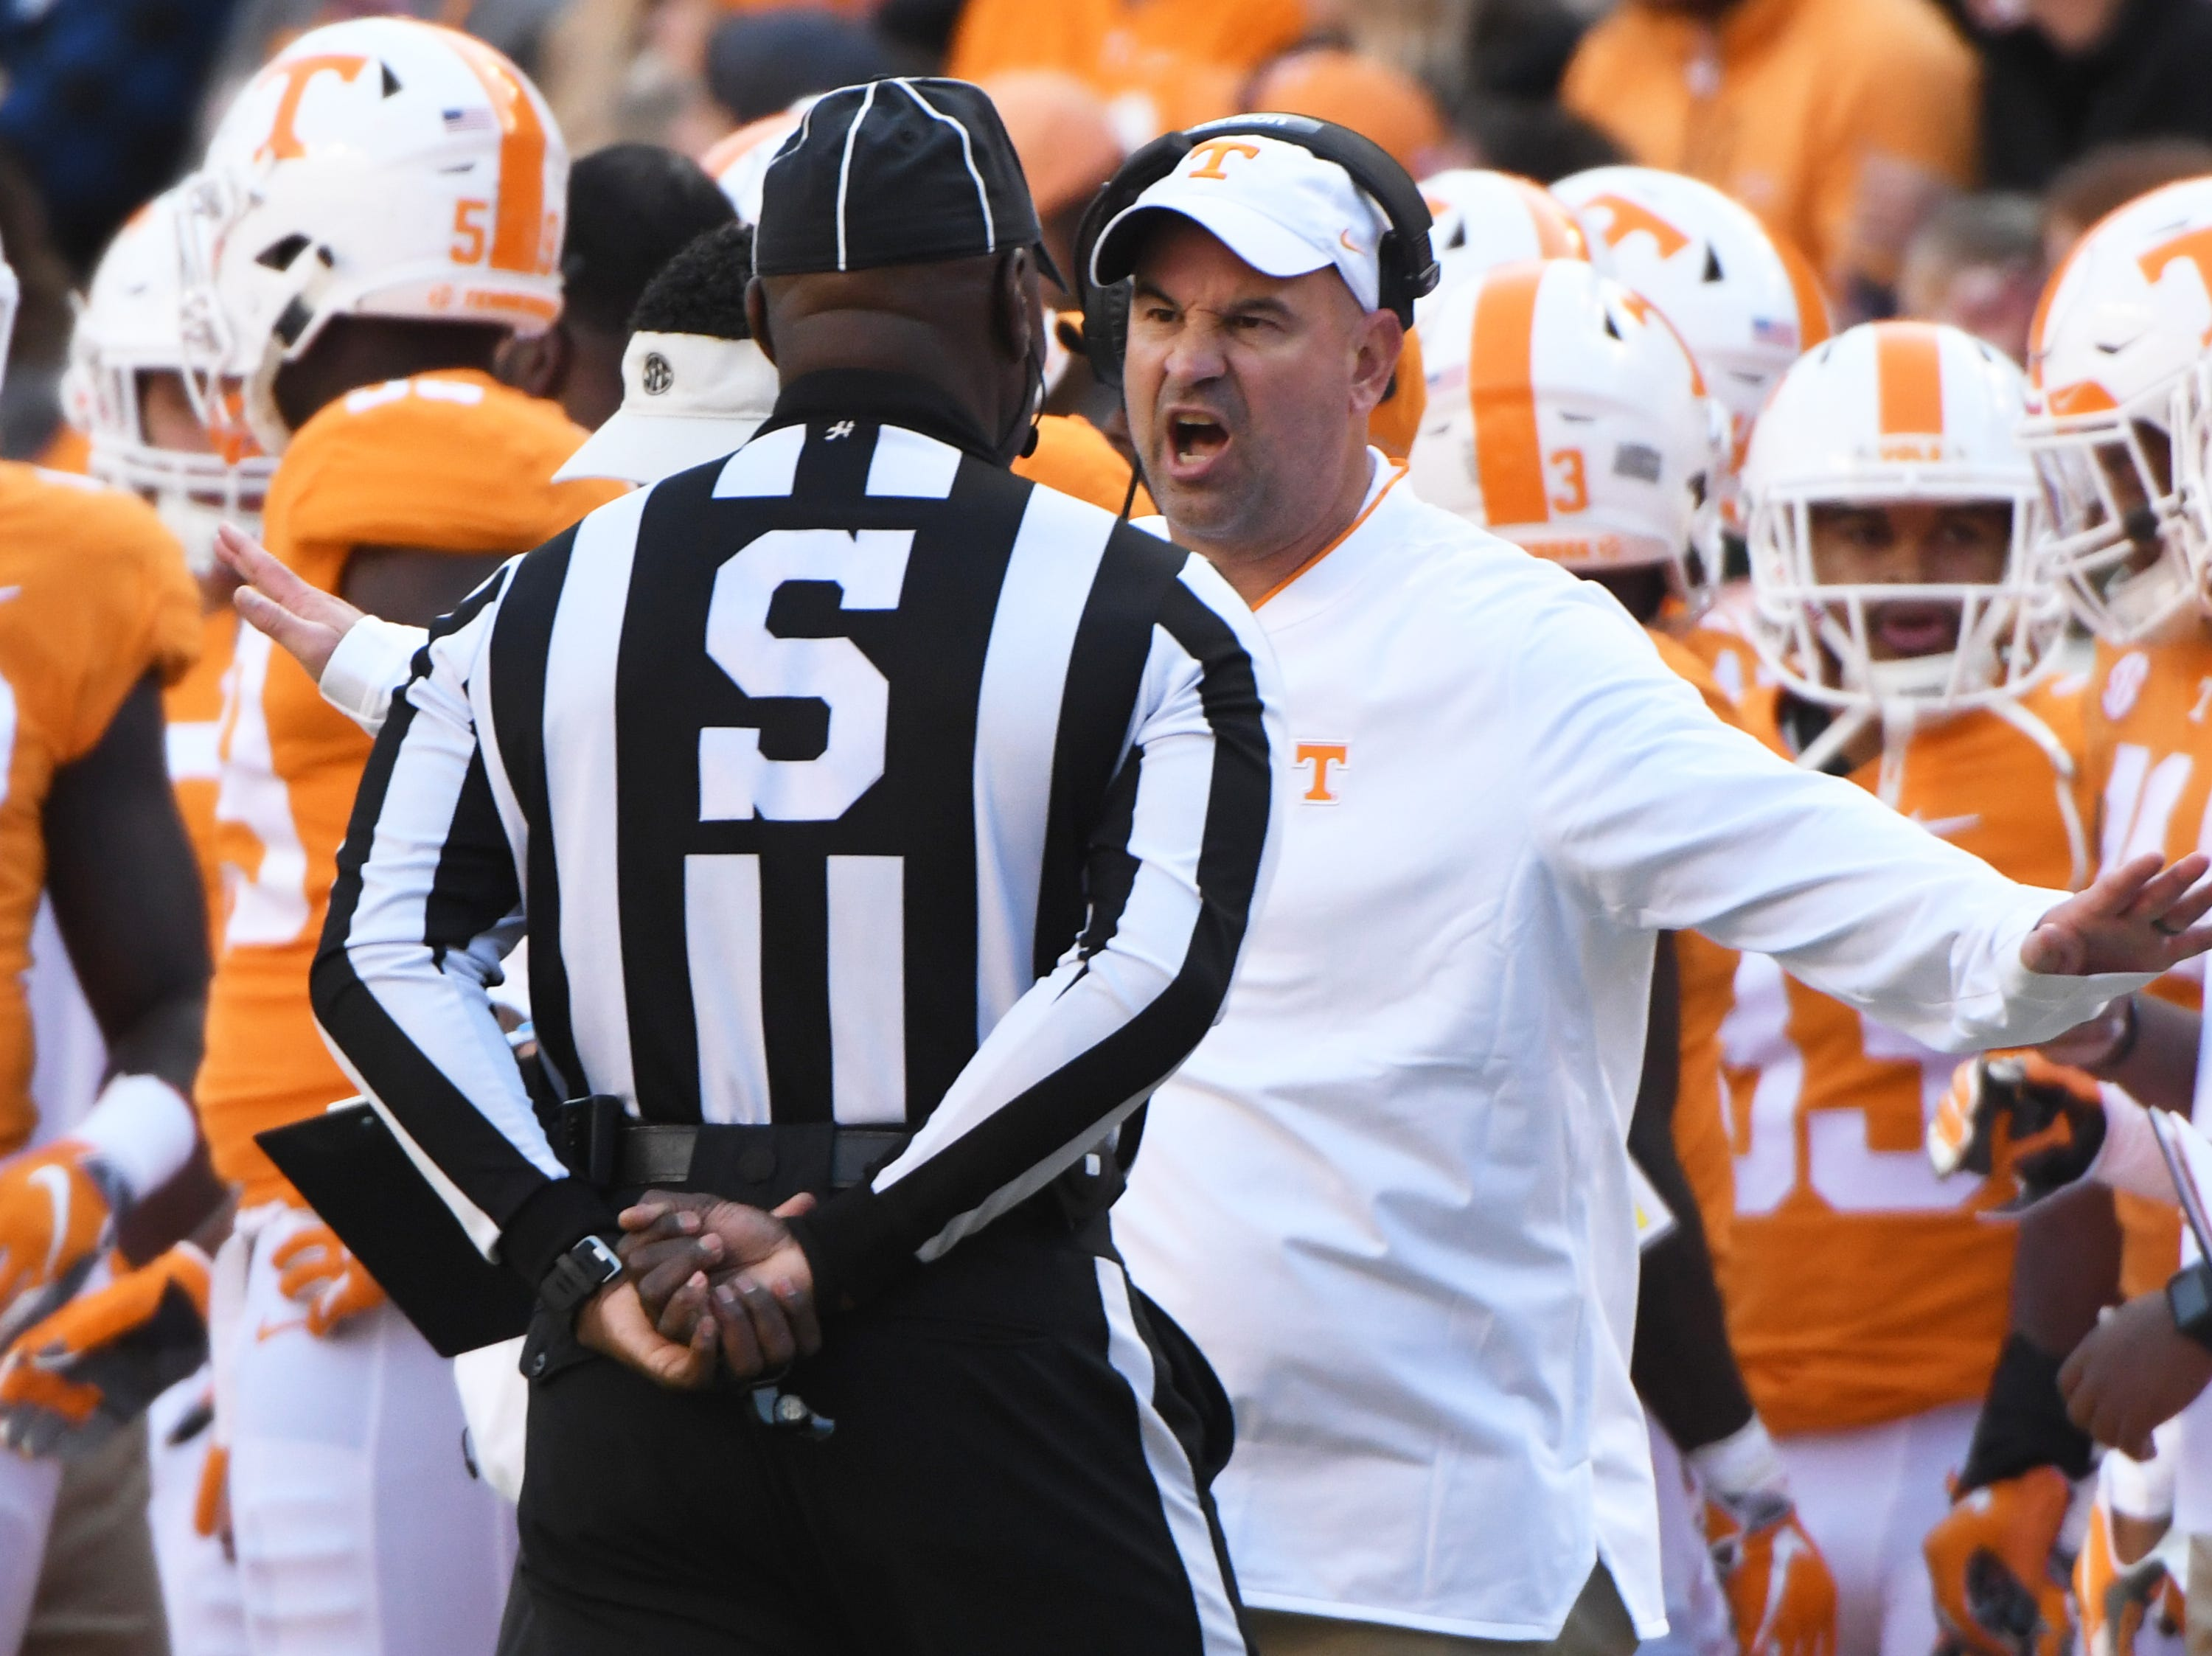 Tennessee Head Coach Jeremy Pruitt yells at an official during the homecoming game between Tennessee and Charlotte outside of Neyland Stadium Saturday, Nov. 3, 2018.